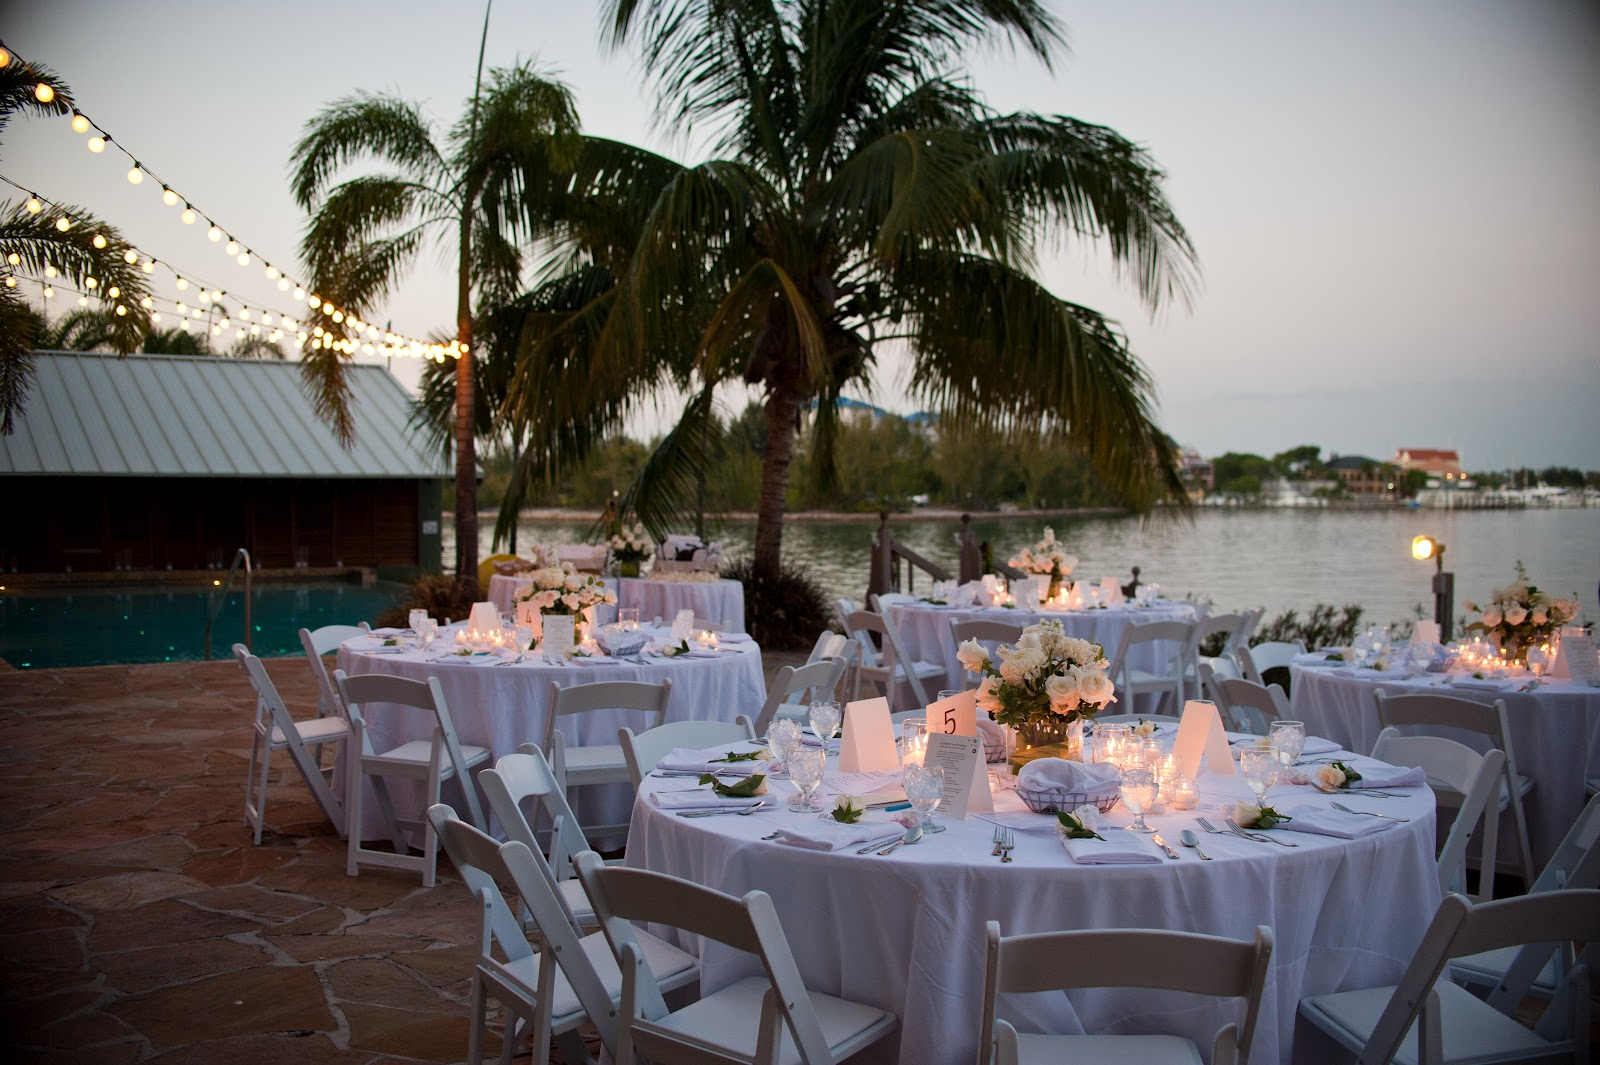 Chic Bahamas Weddings All Inclusive Grand Bahamas Destination Wedding At Pelican Bay